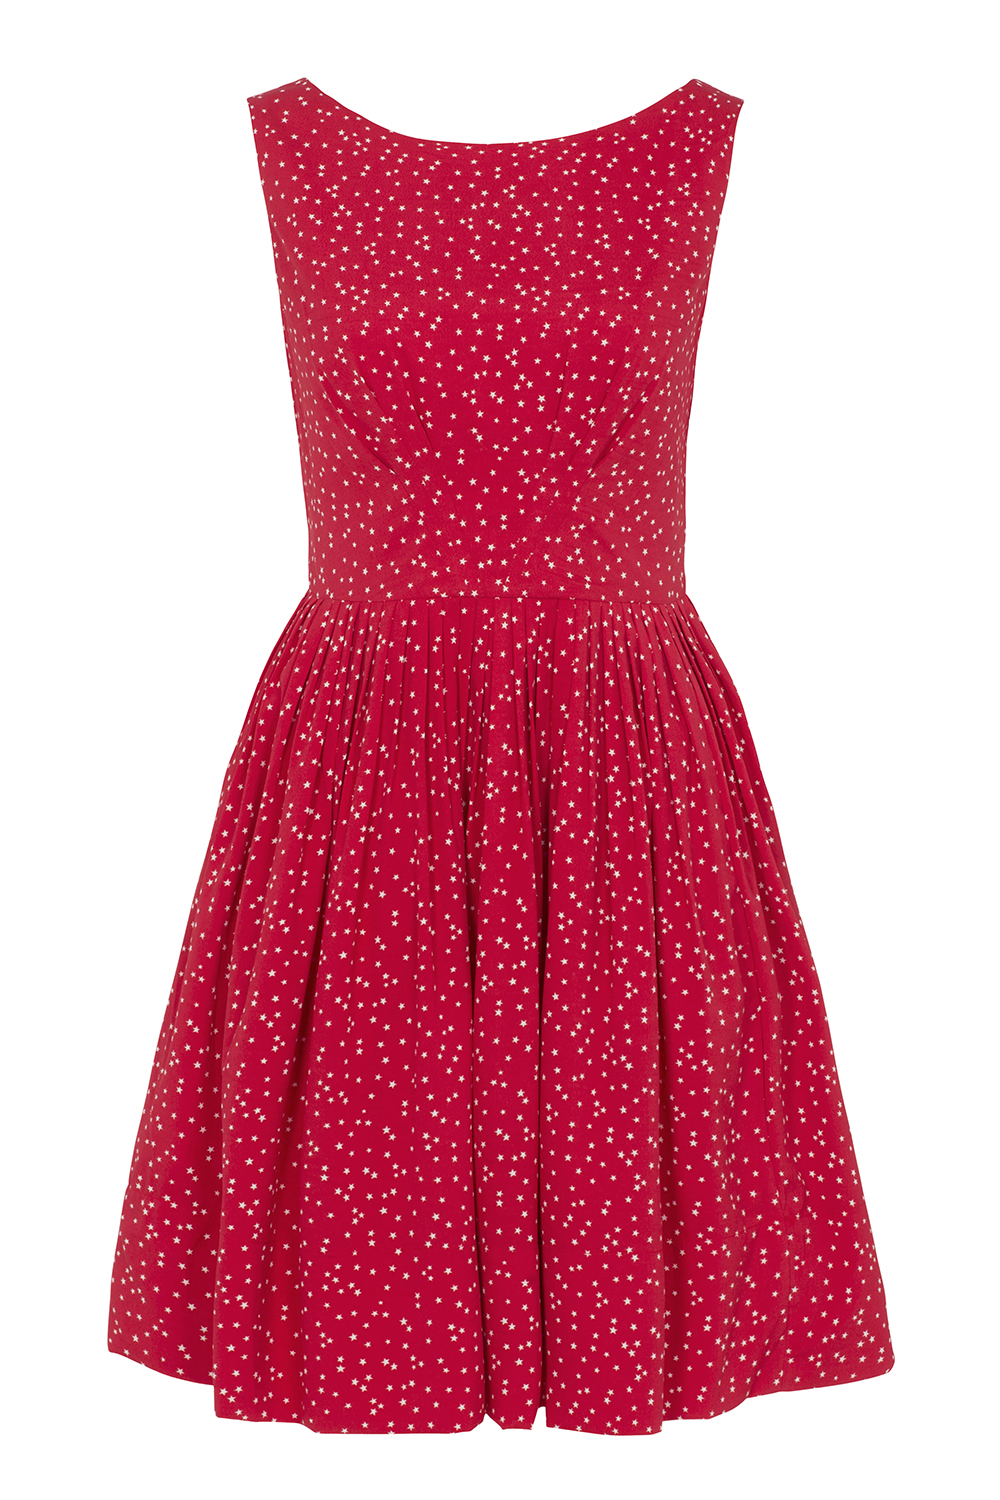 Abigail dress, red stars - Emily and Fin